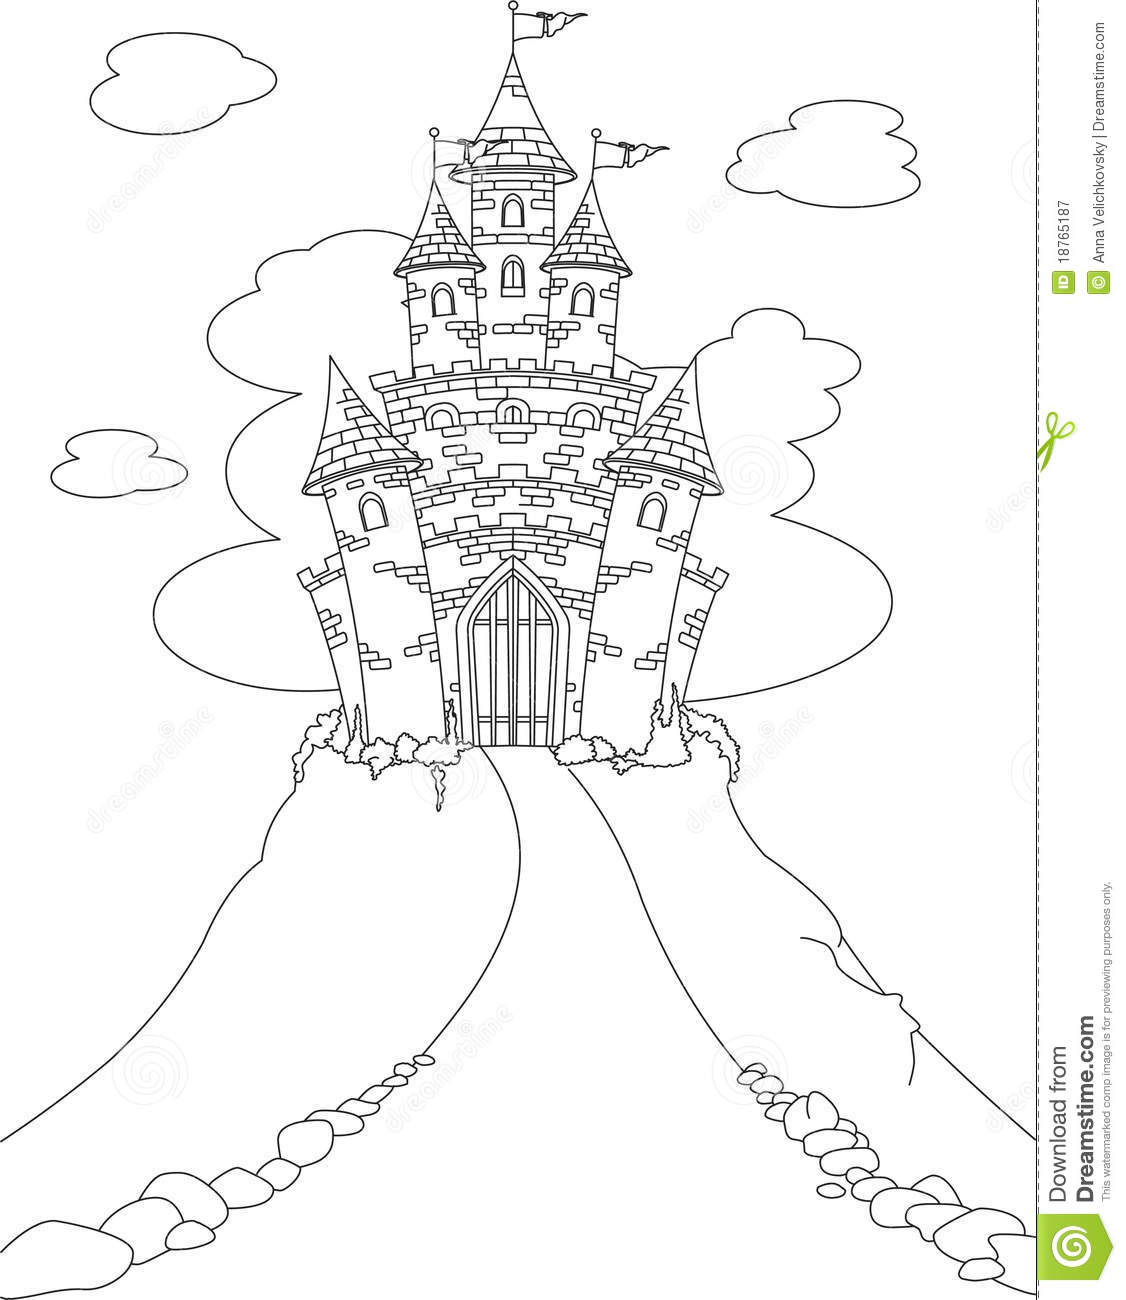 magic castle coloring page royalty free stock photography image